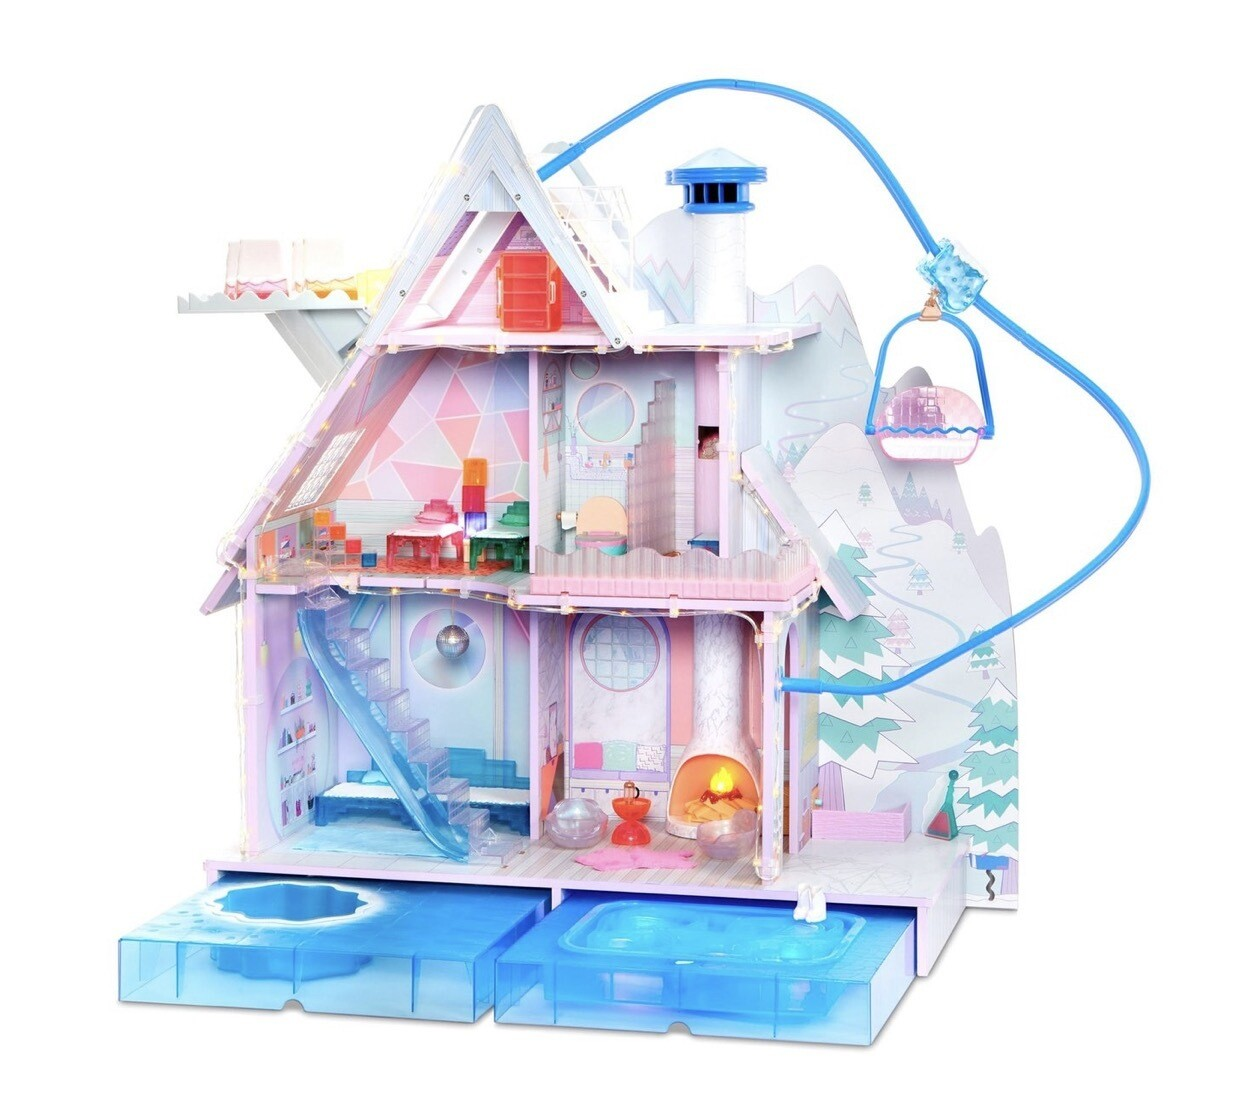 L.O.L. Surprise! Winter Disco Chalet Wooden Doll House